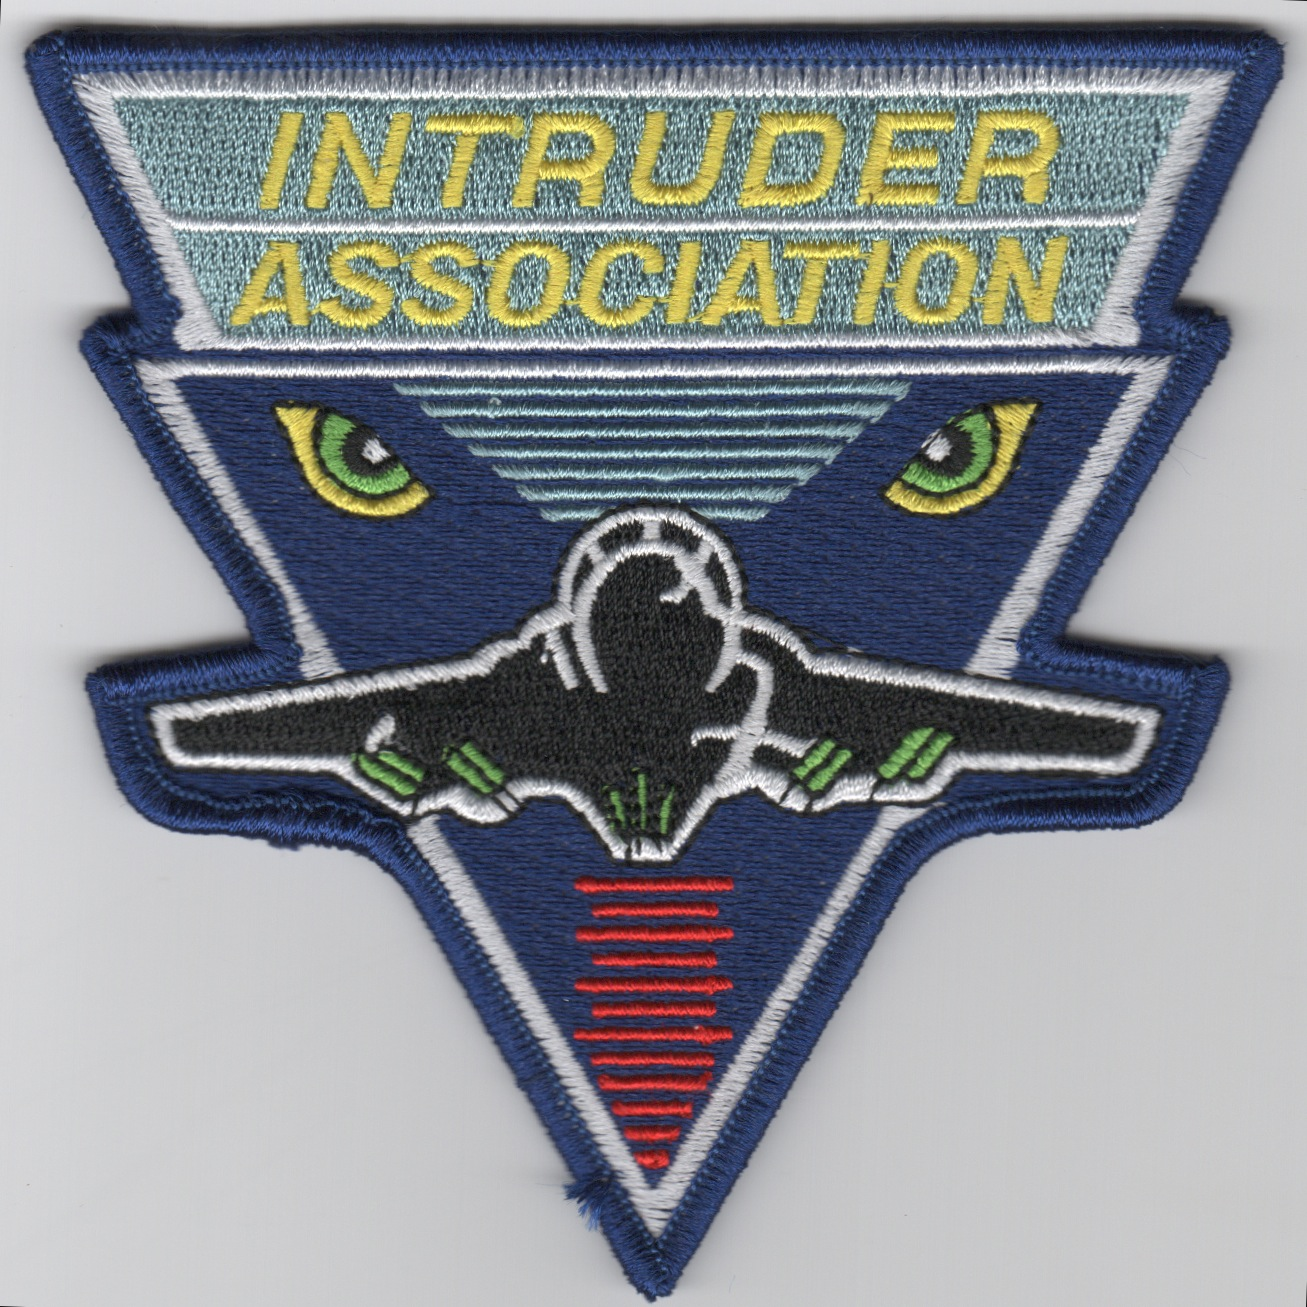 Intruder Association Patch